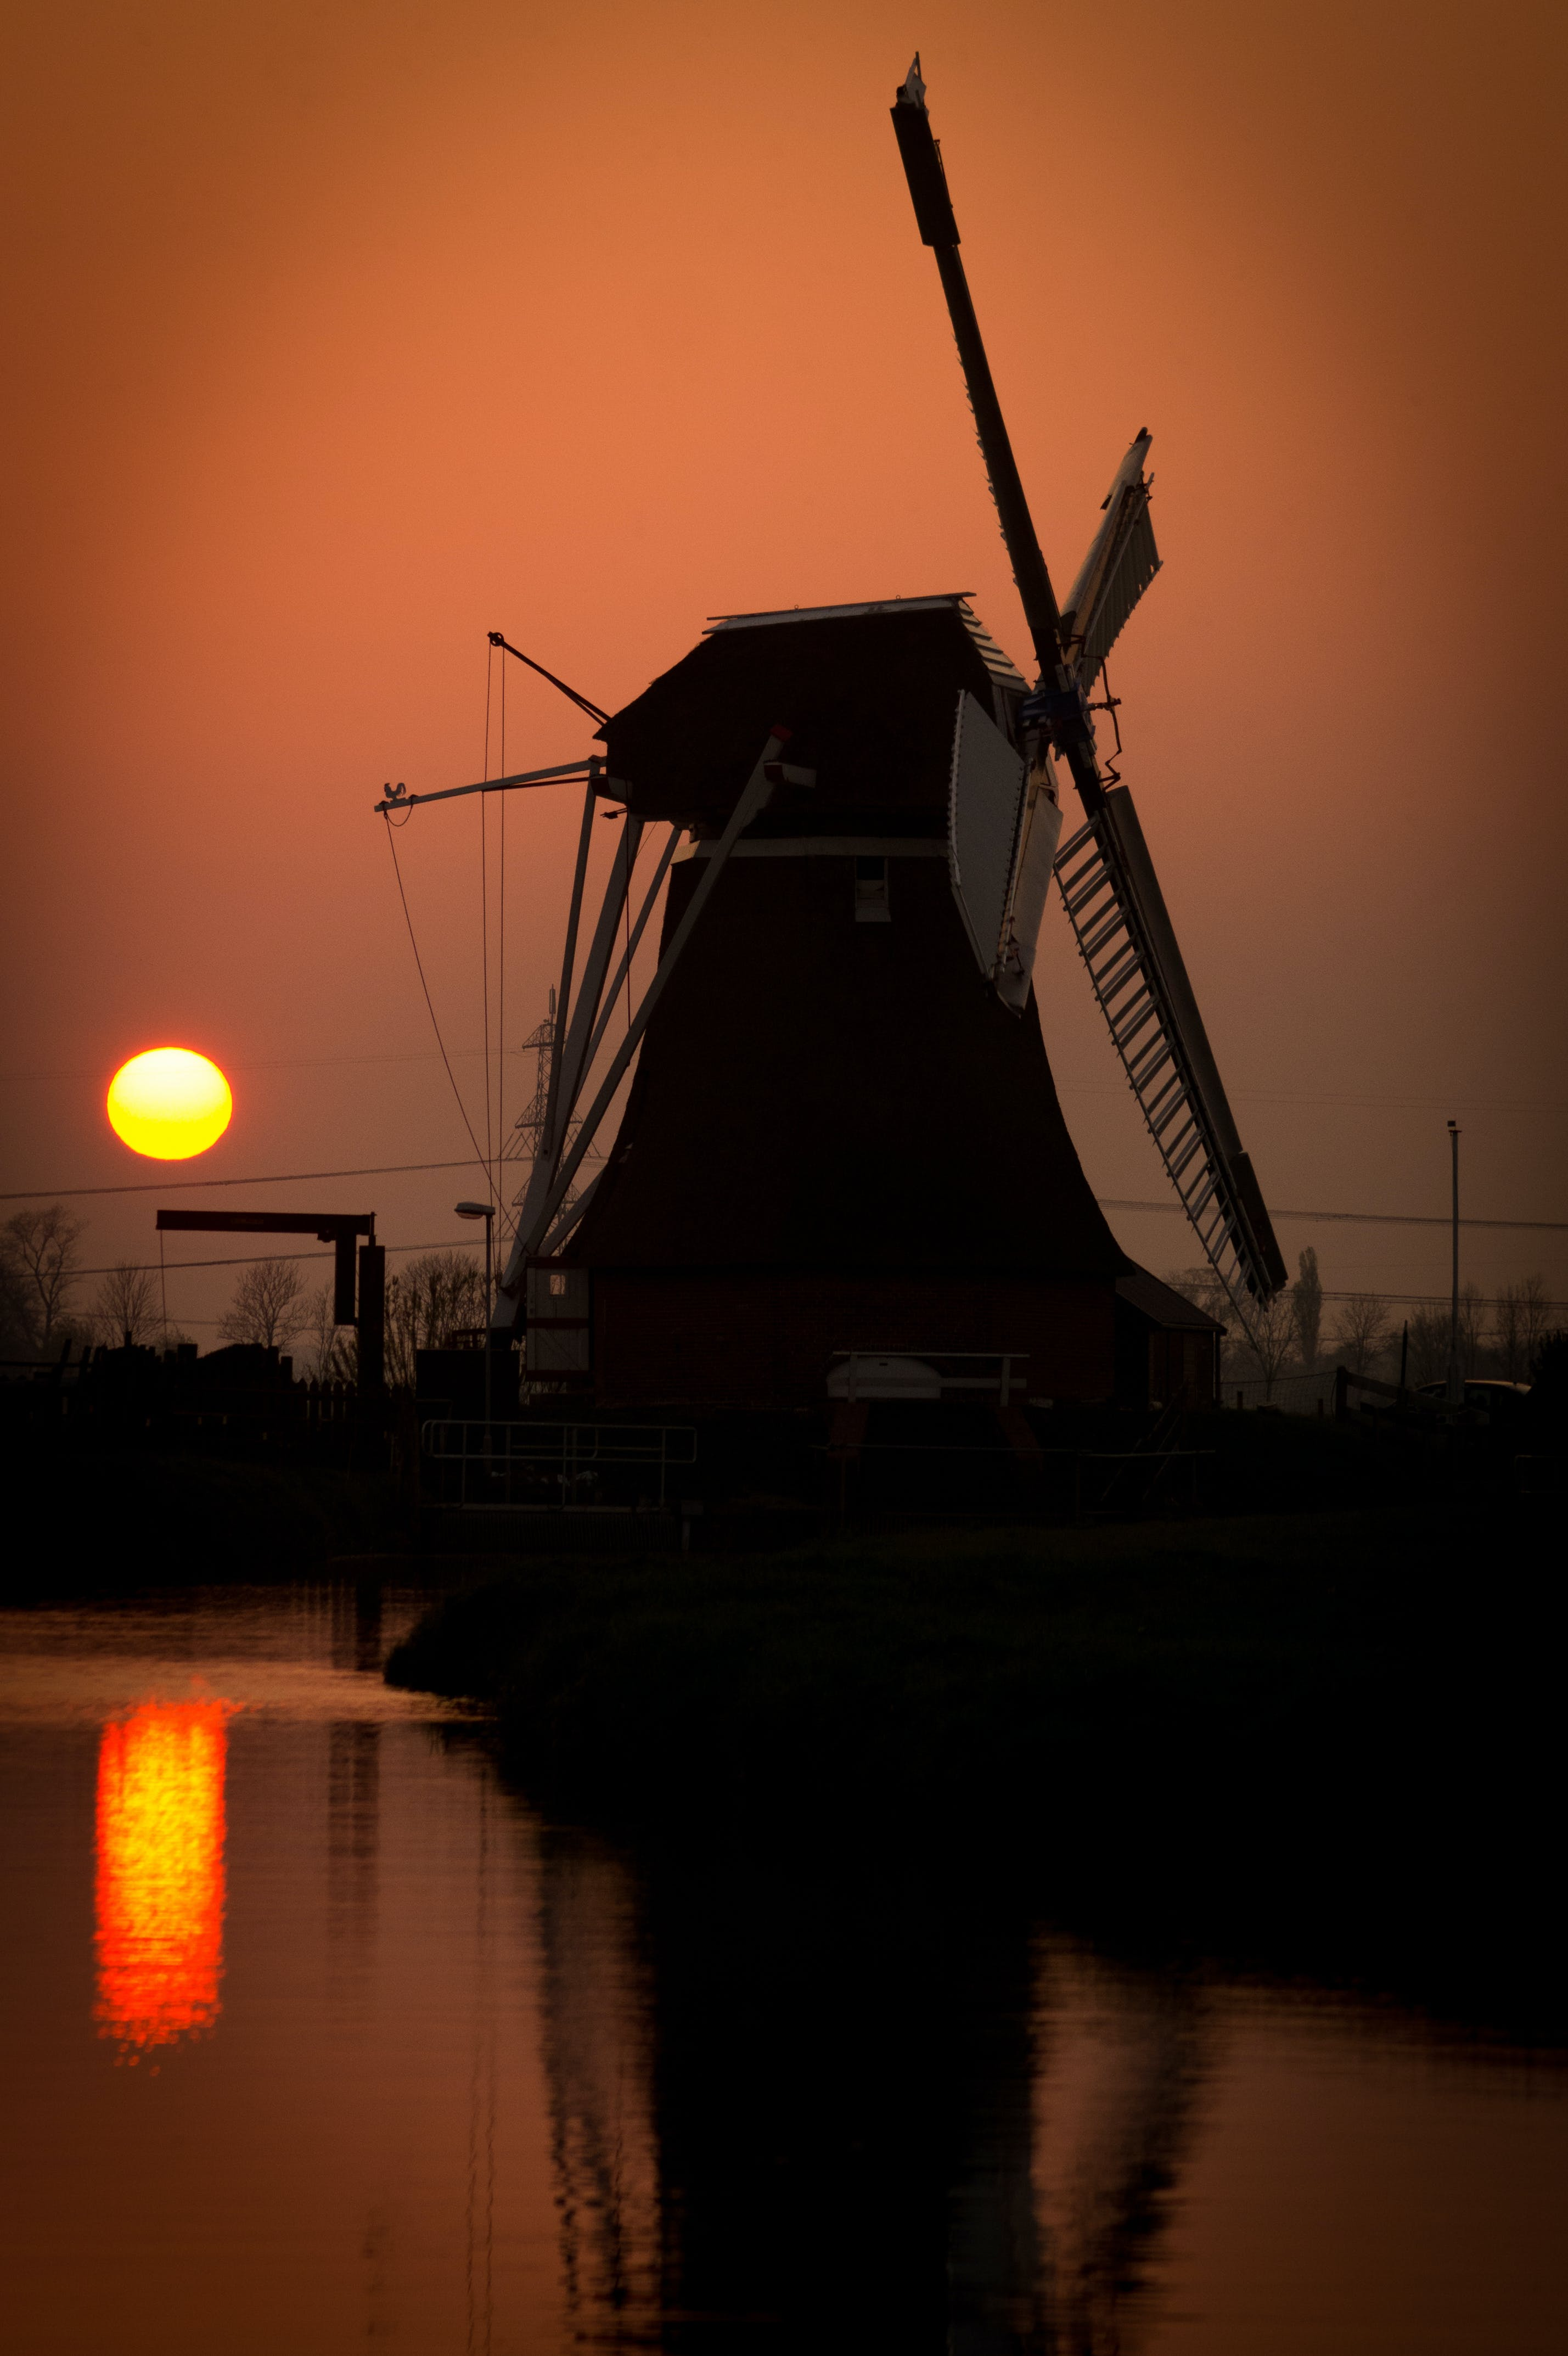 Silhouette of Watermill